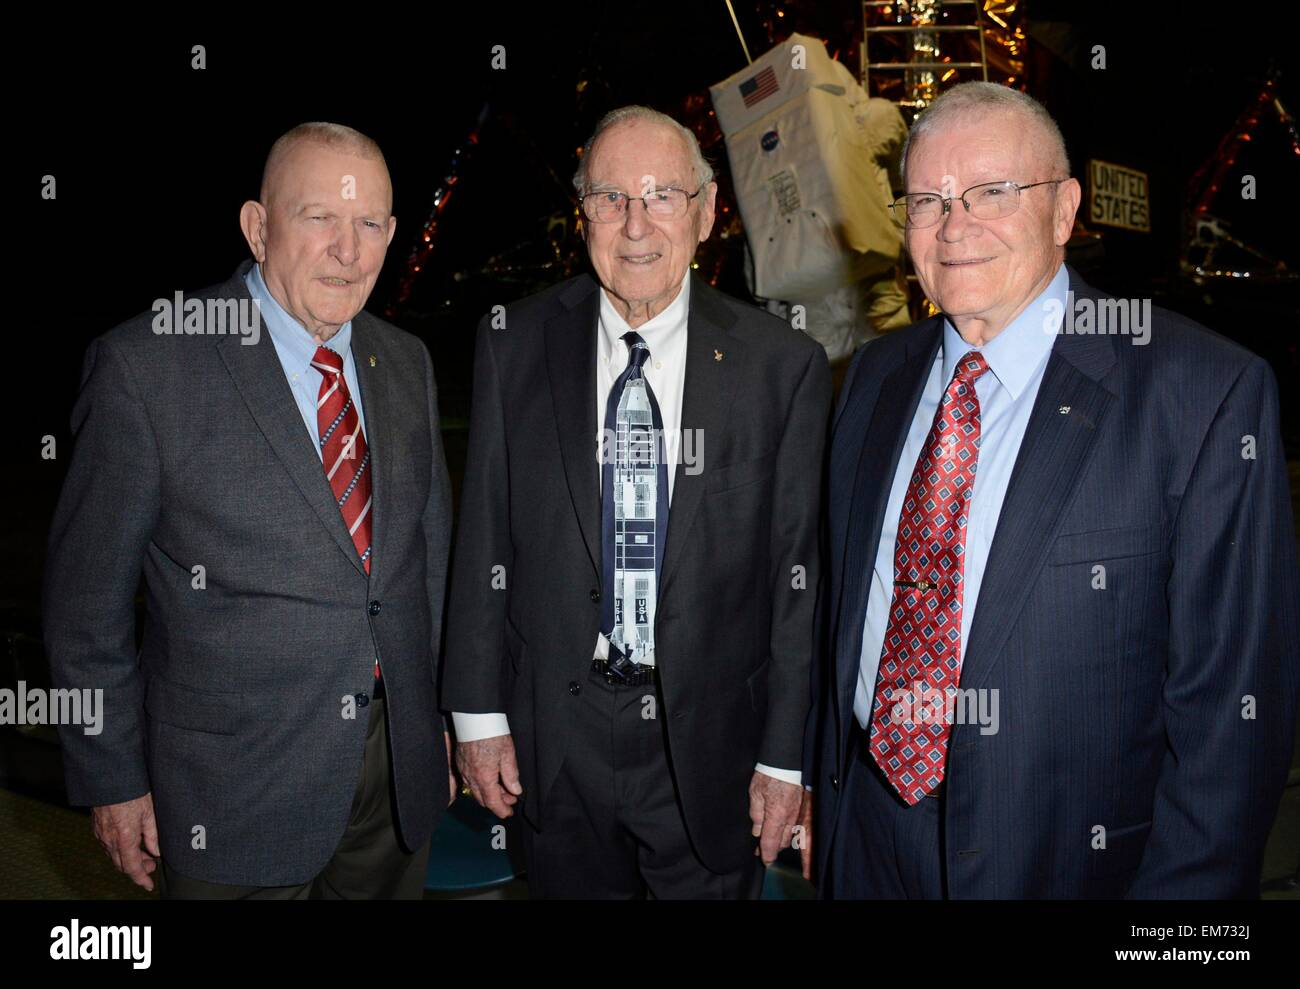 Garden City, NY, USA. 16th Apr, 2015. Gene Kranz, Jim Lovell, Fred Haise in attendance for Apollo 13 45th Anniversary - Stock Image